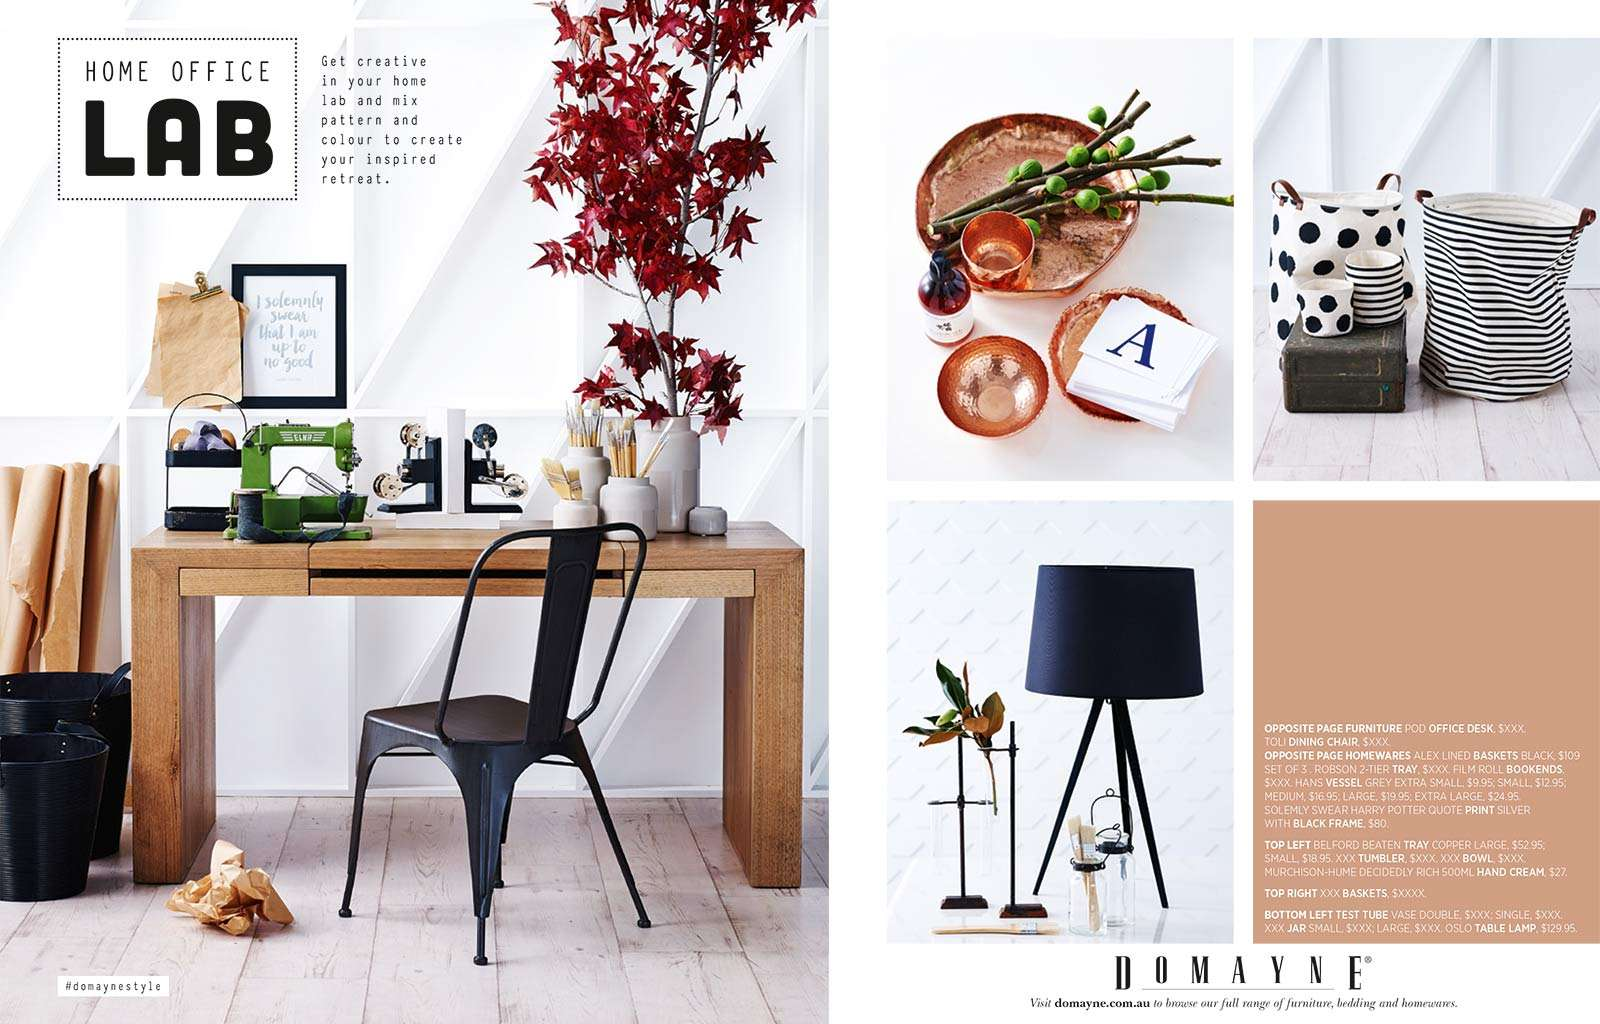 DM_HOME-OFFICE-LAB_PROOF-1_EXTRAS-7